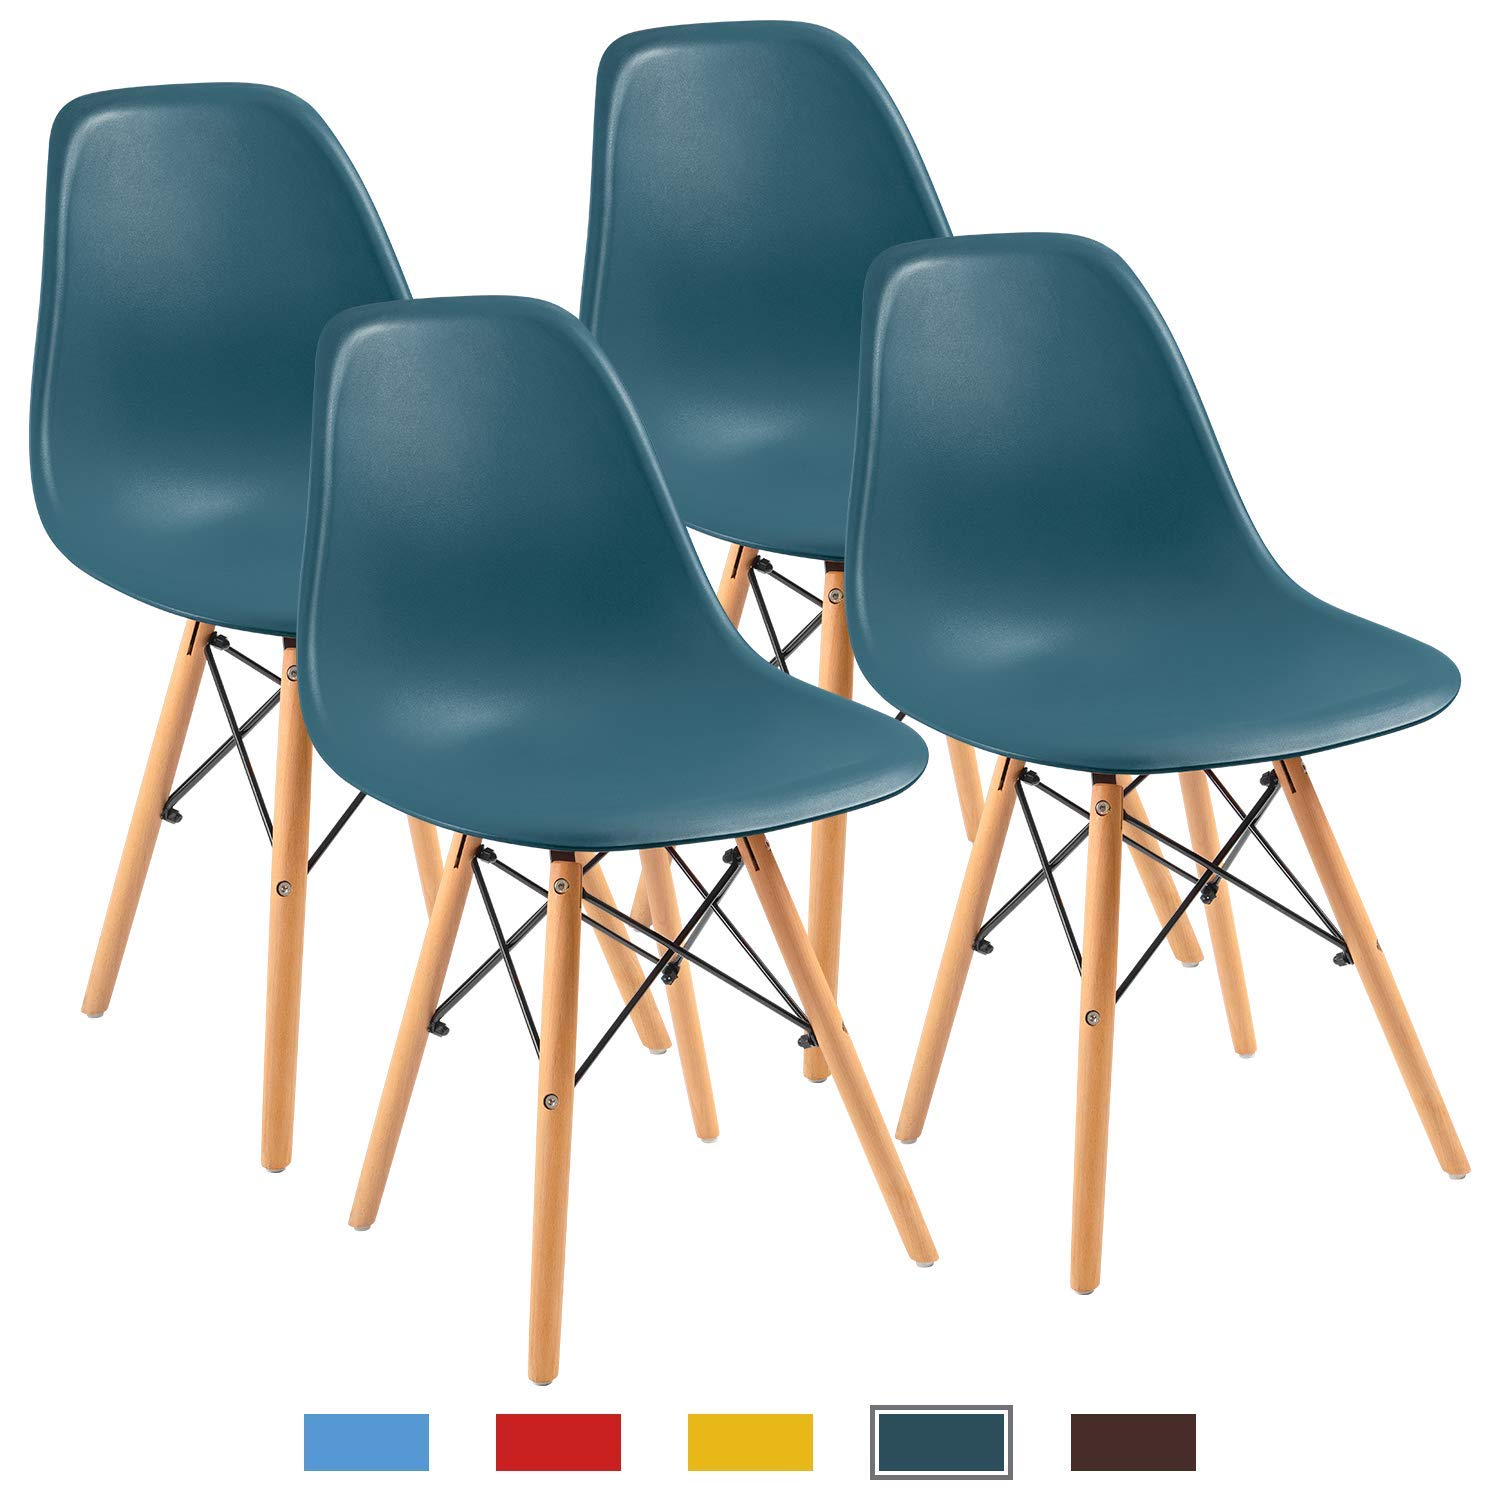 Furmax Pre Assembled Modern Style Dining Chair Mid Century Modern DSW Chair, Shell Lounge Plastic Chair for Kitchen, Dining, Bedroom, Living Room Side Chairs (Dark Green)